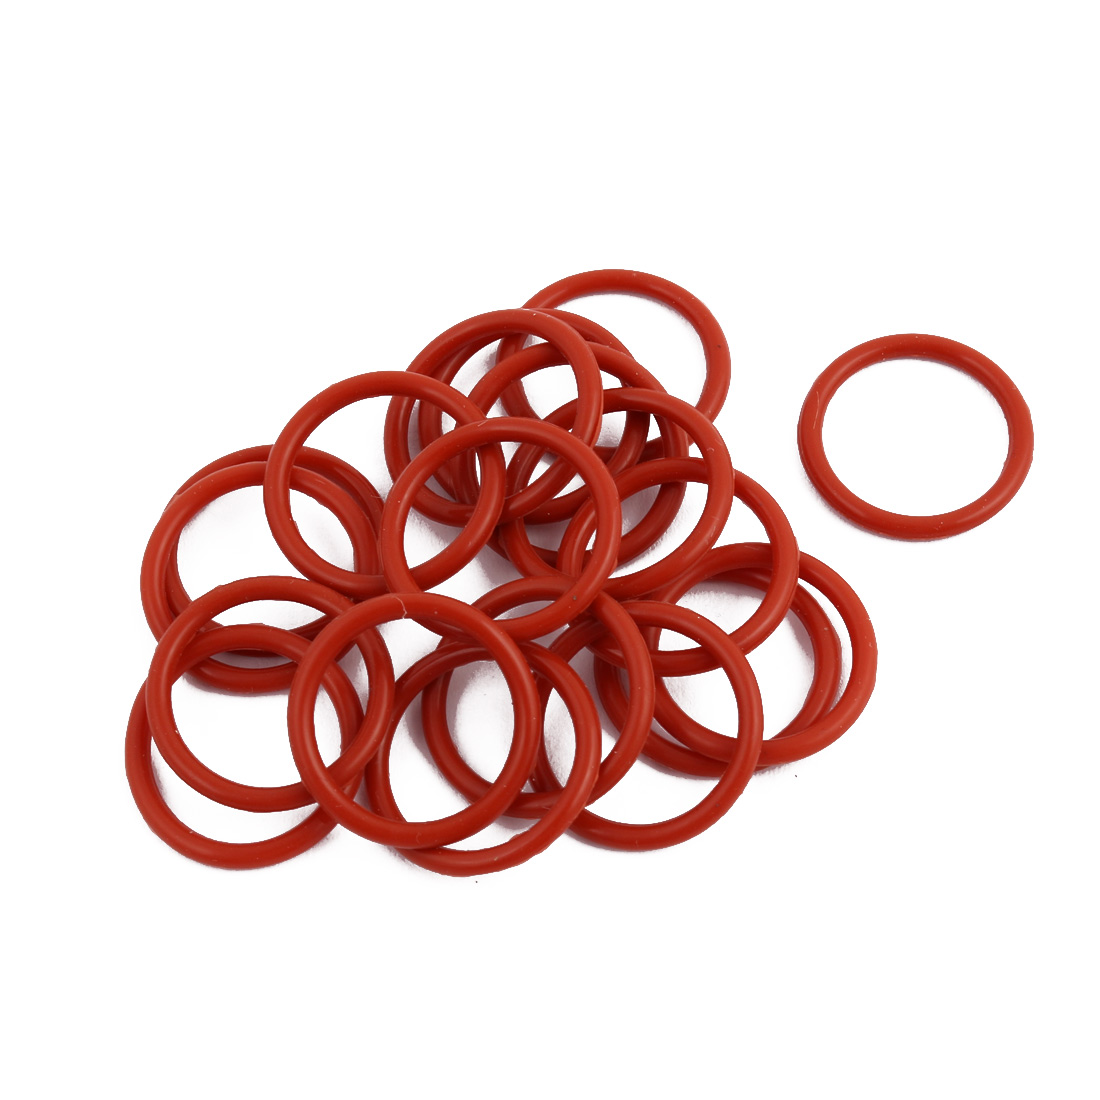 20pcs Red Round Nitrile Butadiene Rubber NBR O-Ring 19mm OD 1.9mm Width